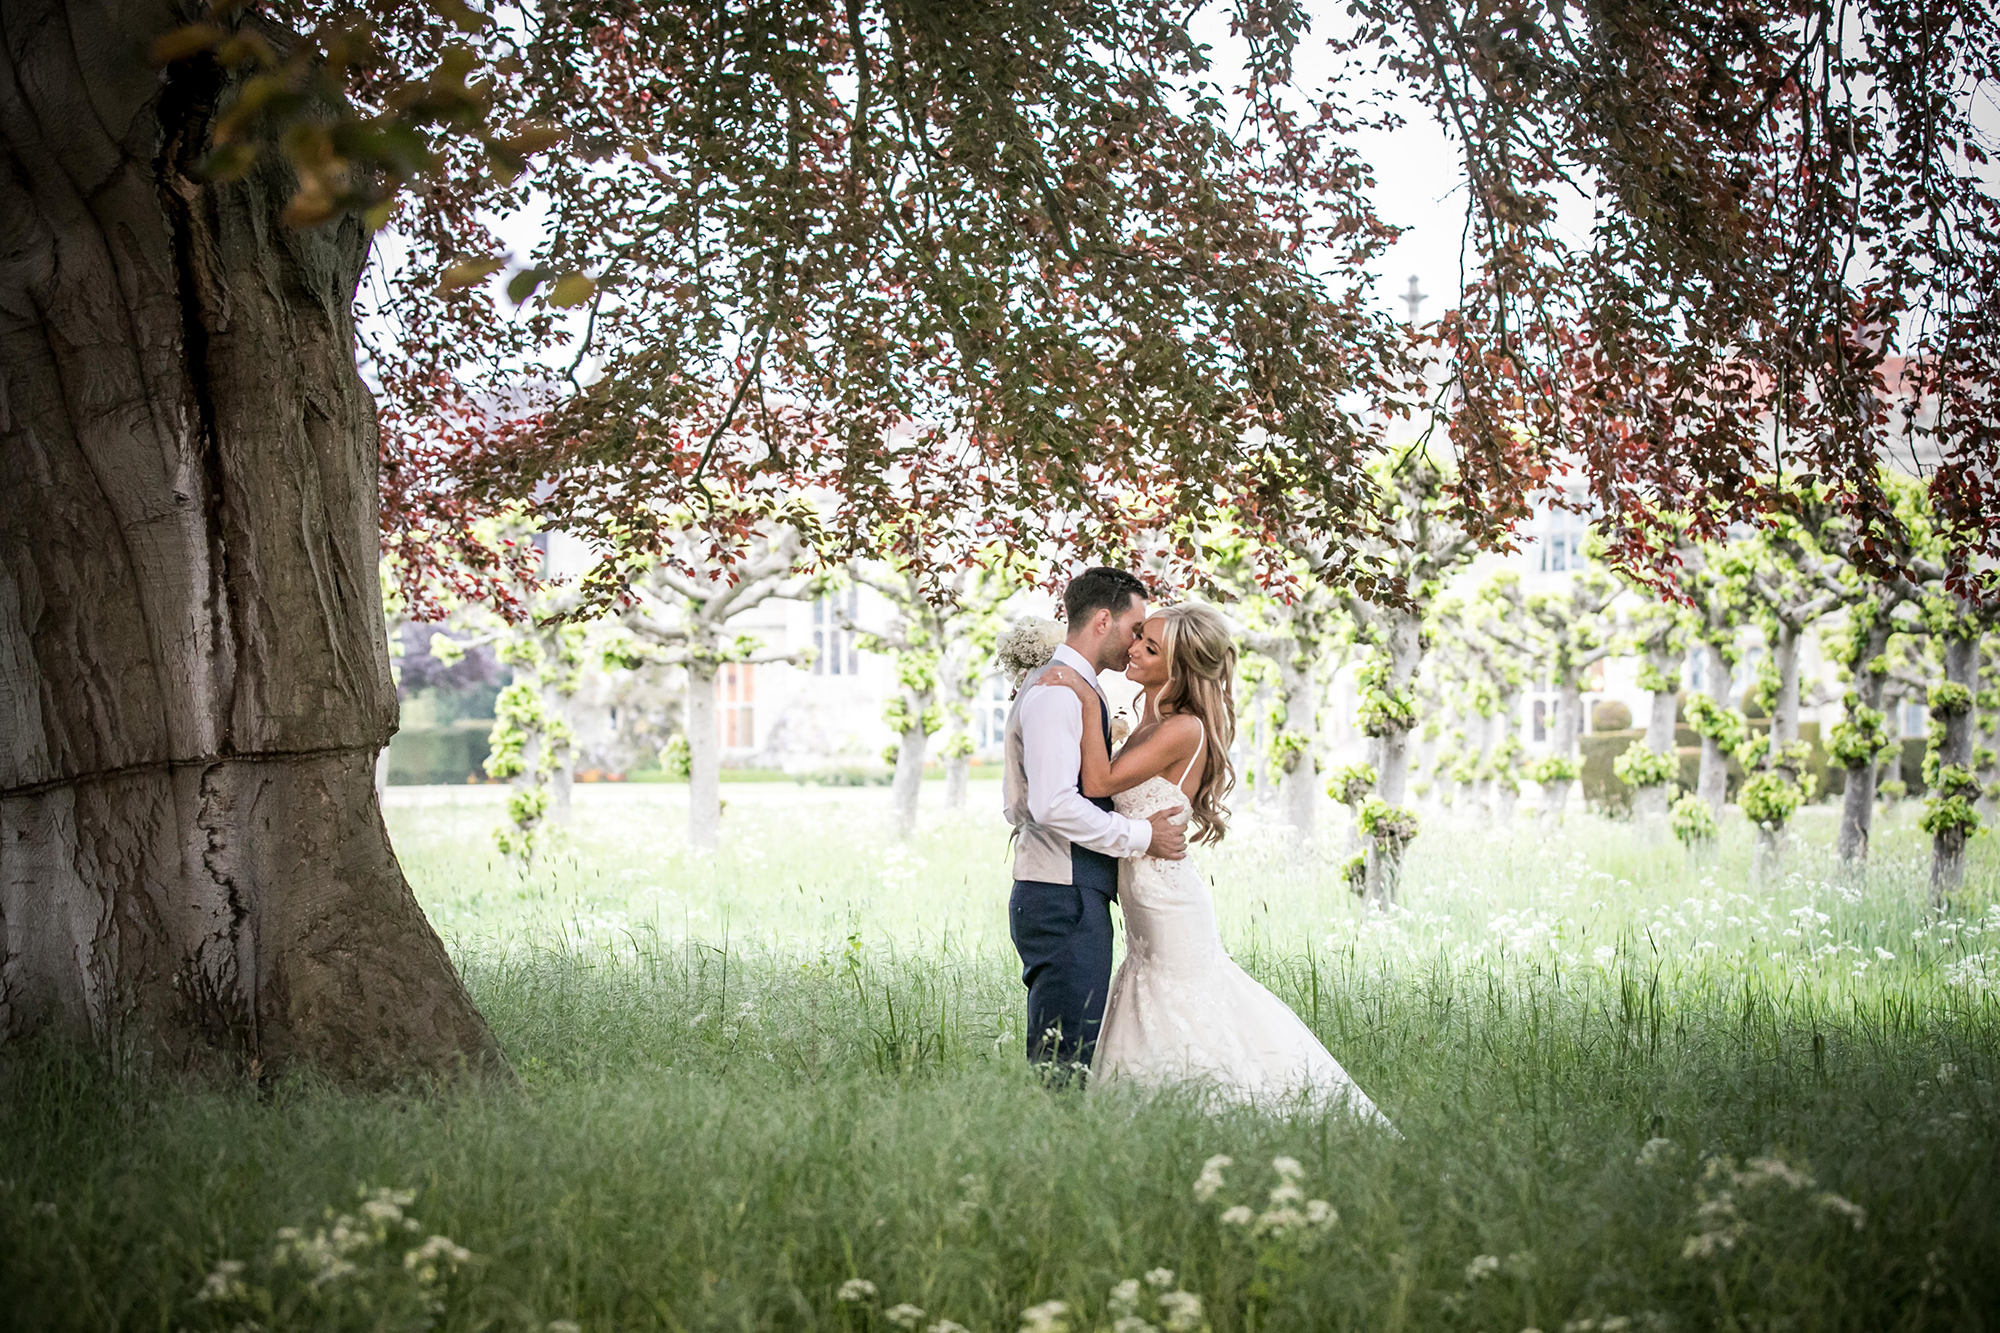 Newly married couple embrace under a tree in the gardens at Hengrave Hall